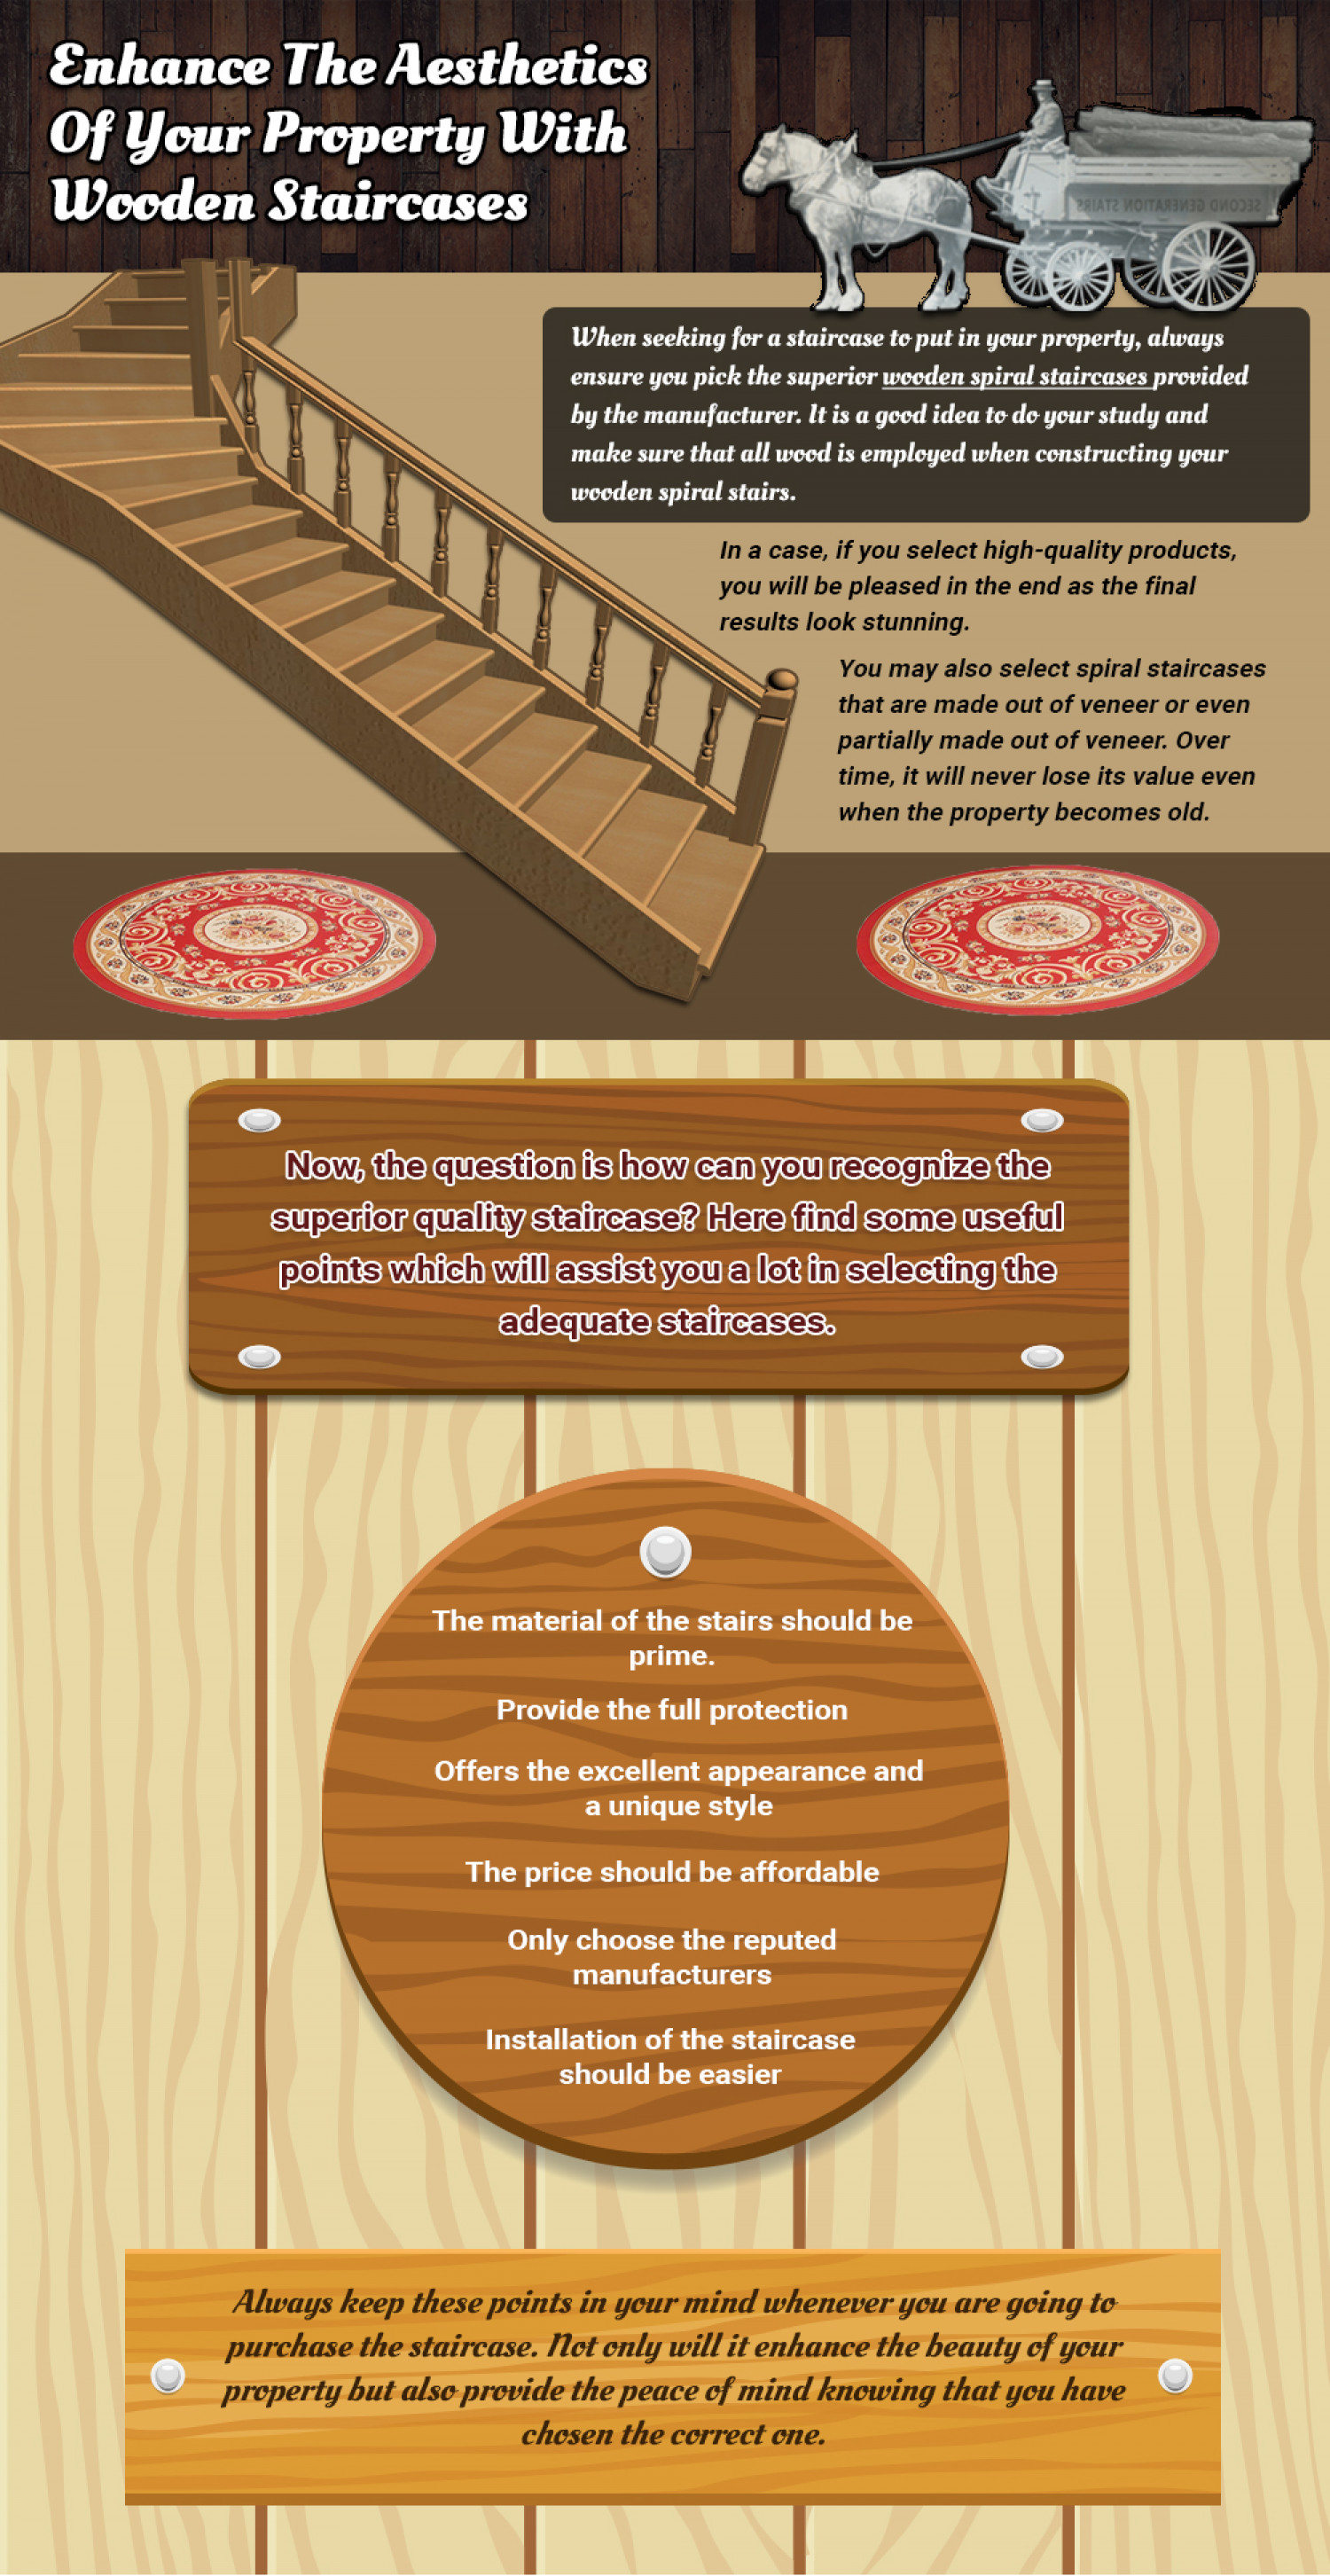 Enhance The Aesthetics Of Your Property With Wooden Staircases Infographic